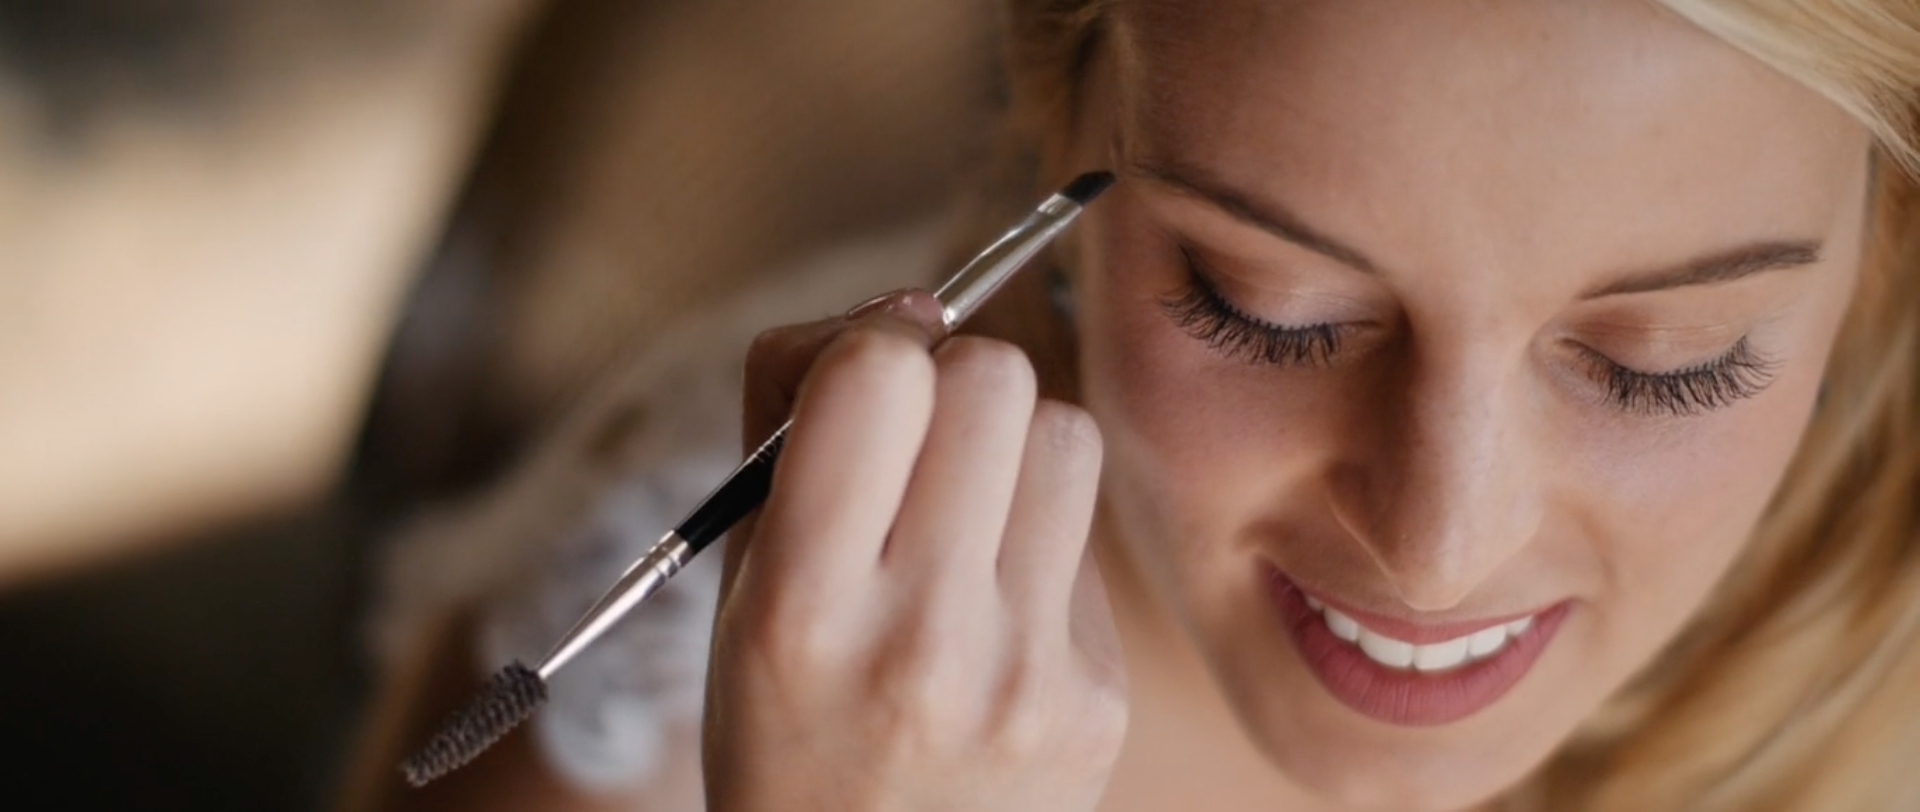 eye make up application - our favorite shot to use